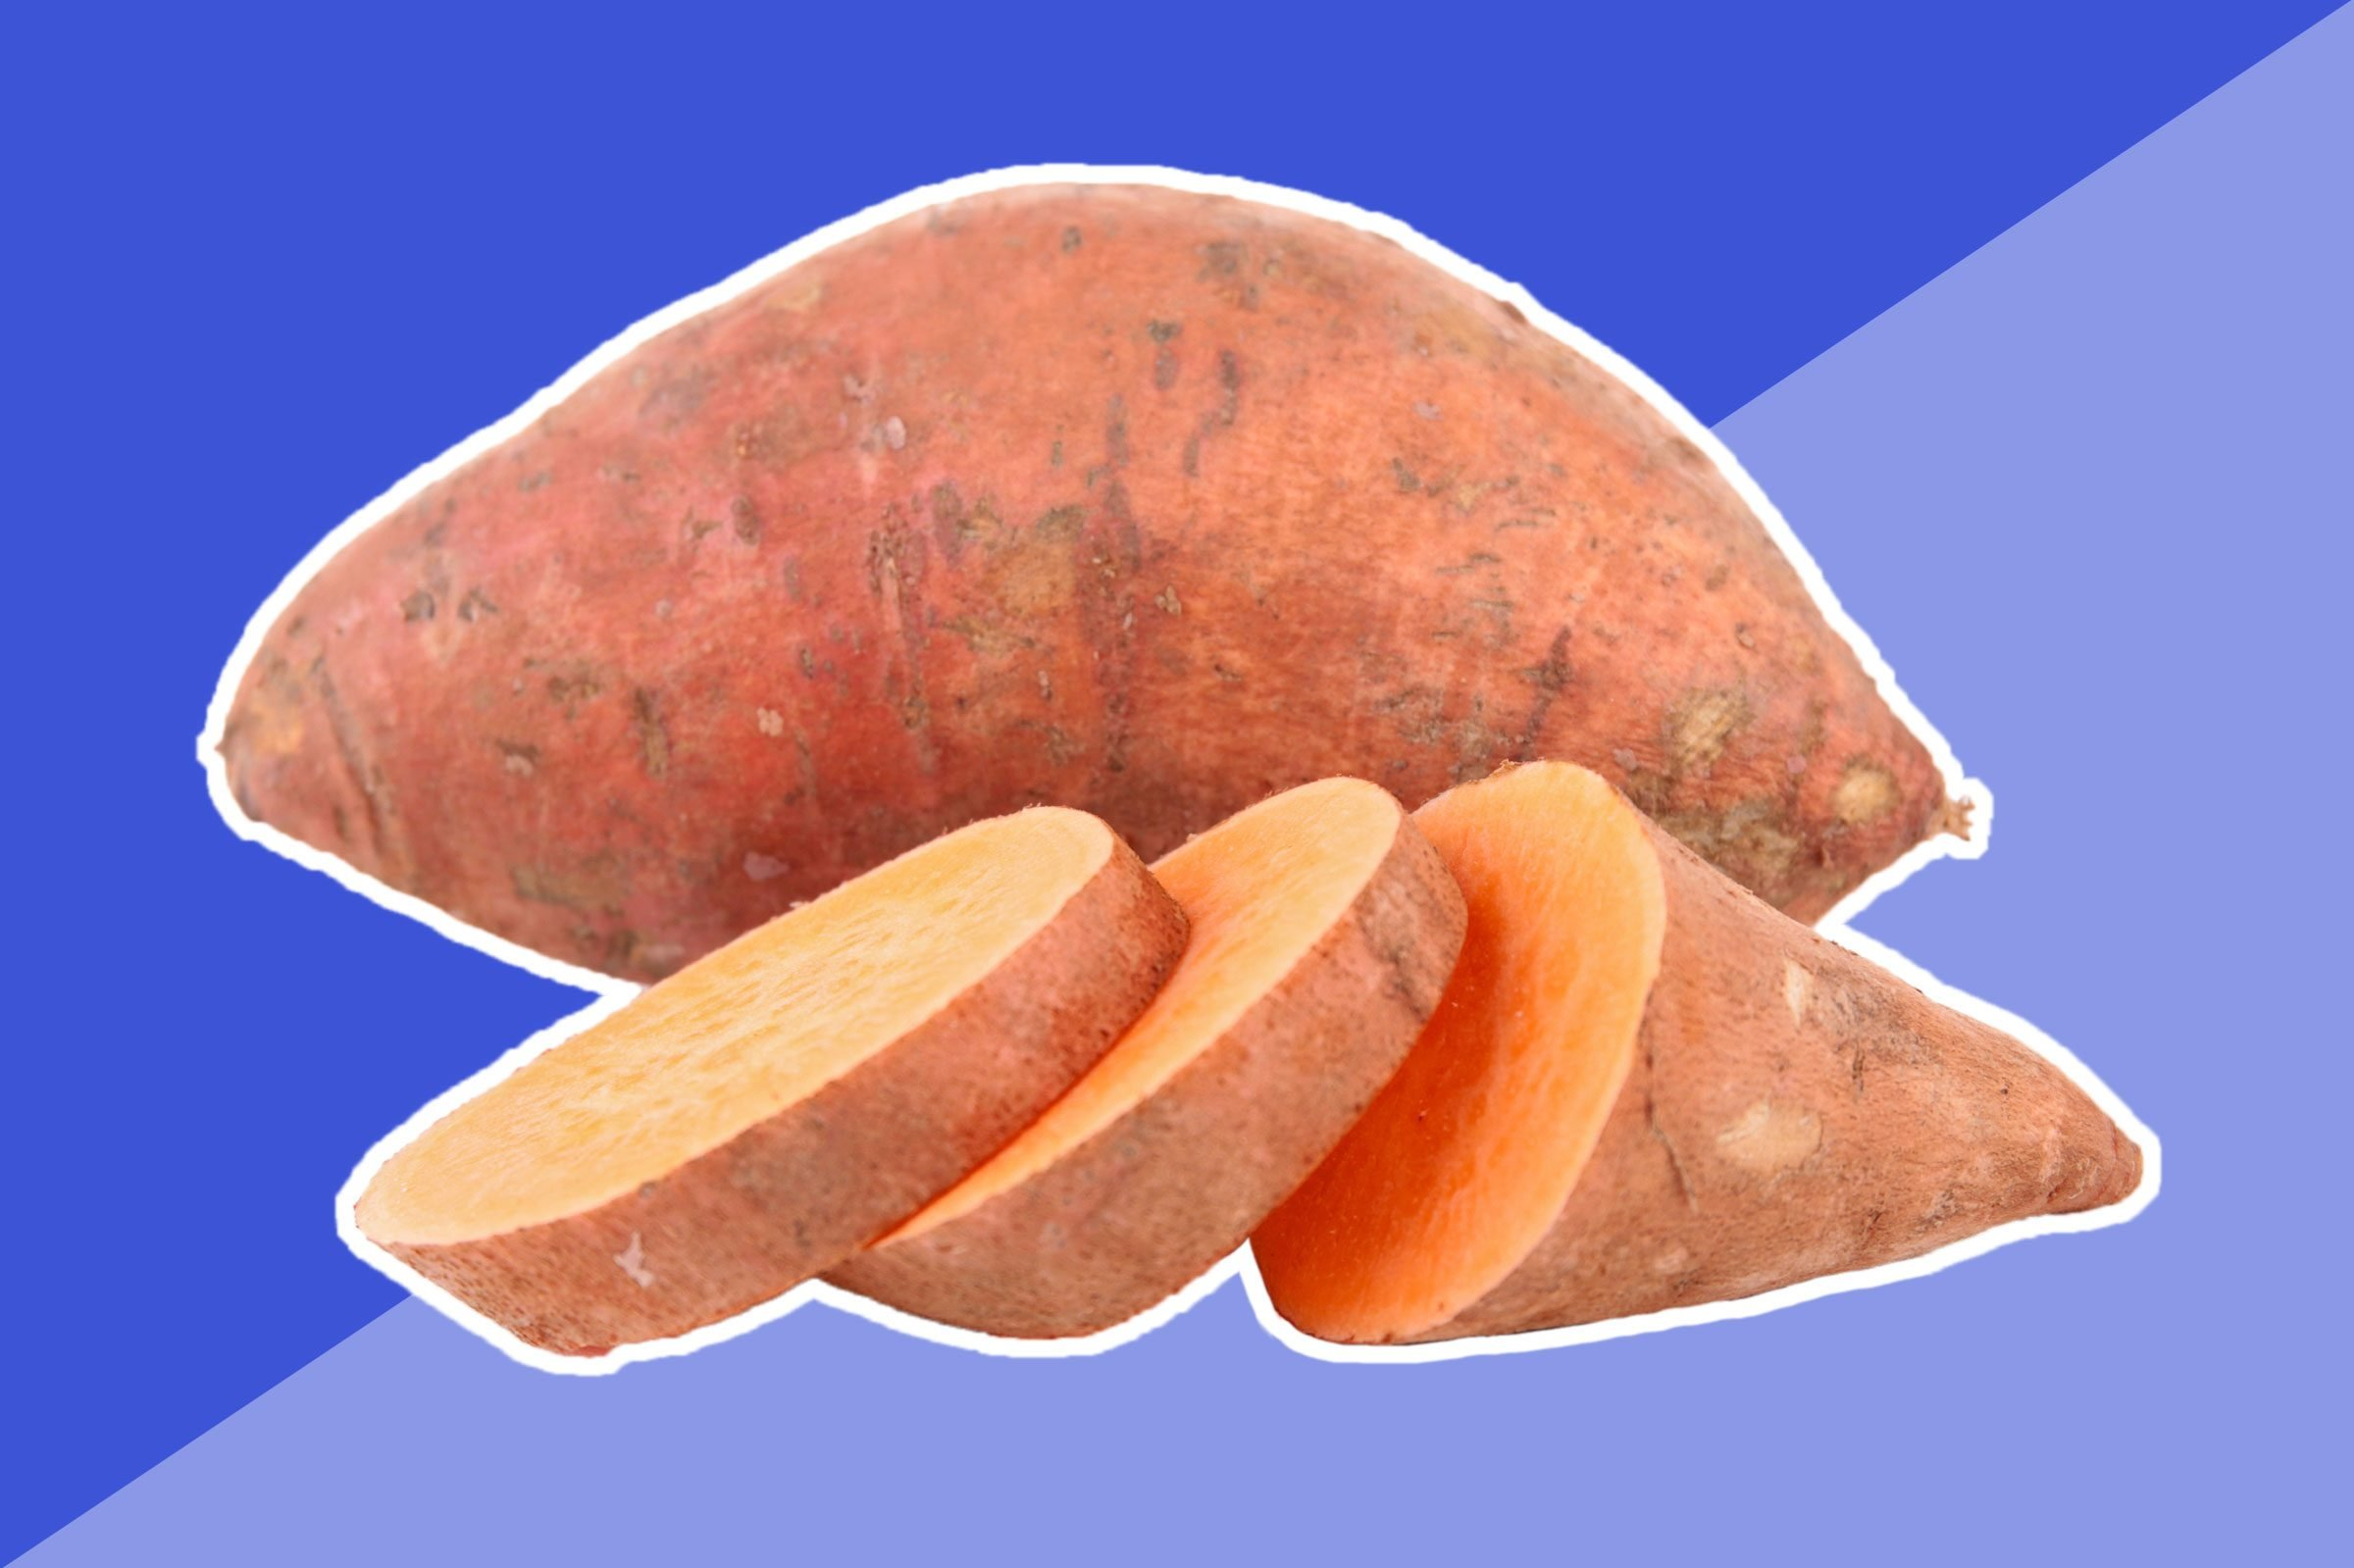 10 foods that all diabetics should avoid - Healthy Carb Sweet Potato